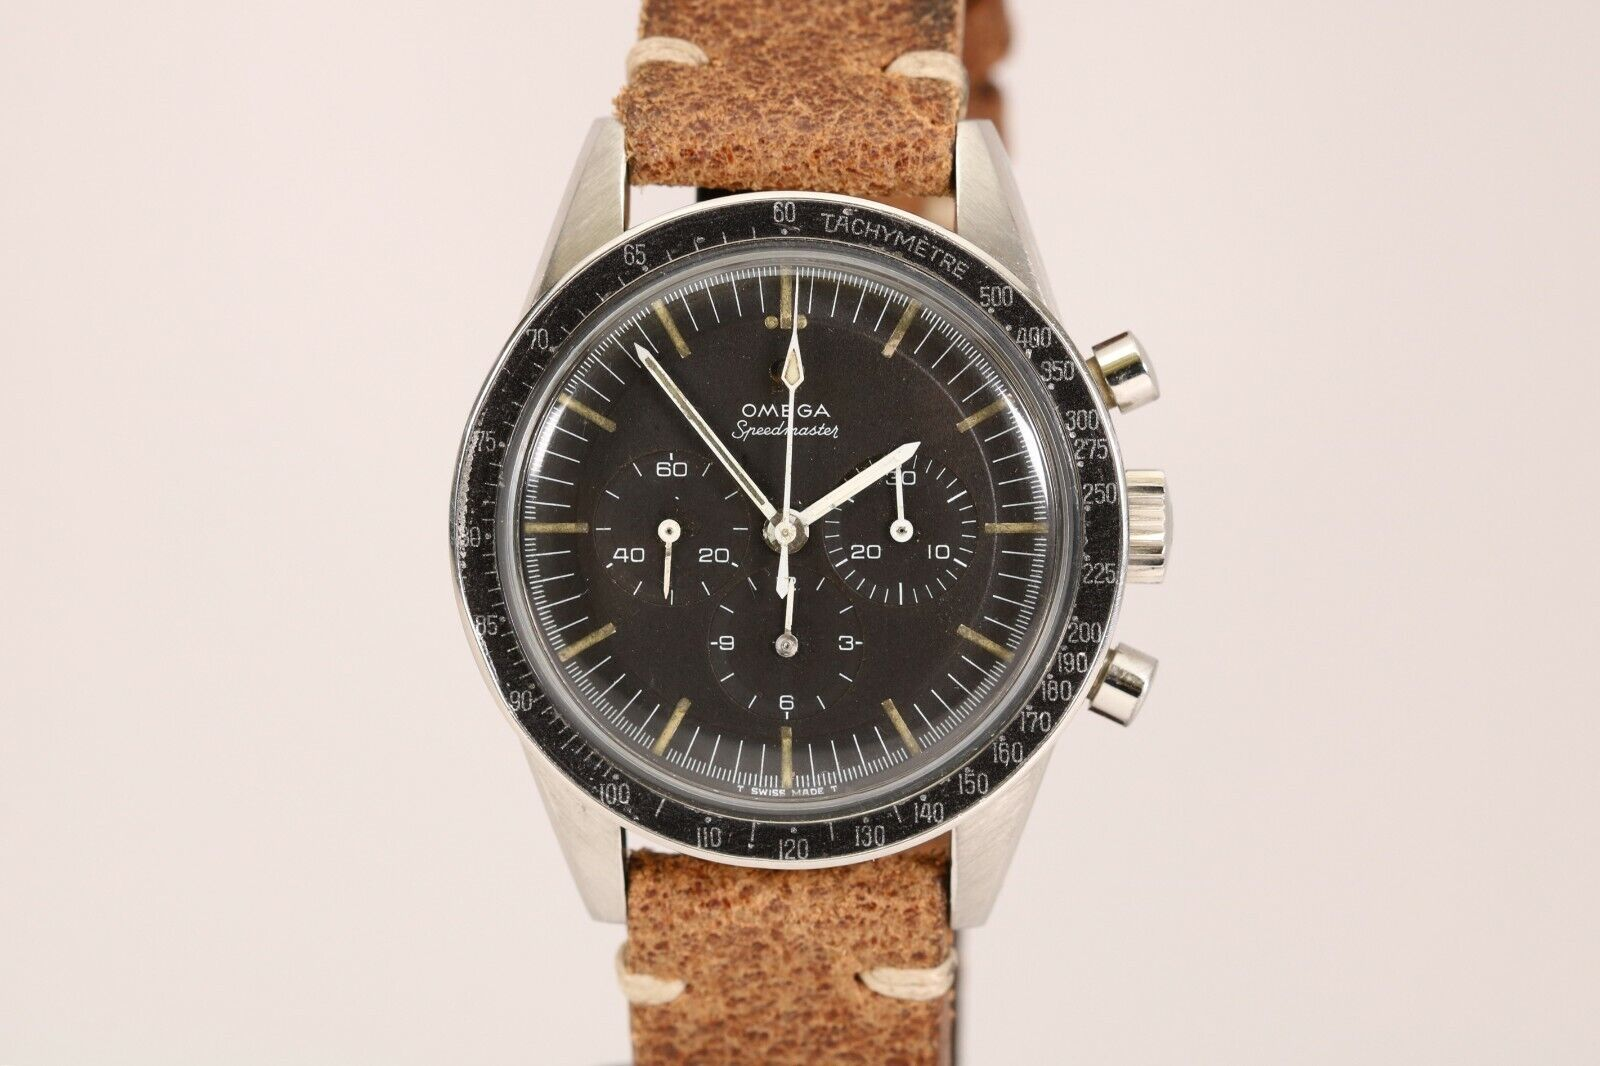 Omega Speedmaster Chronograph Vintage Watch 105.003-65 1960s Cal 321 Ed White - watch picture 1